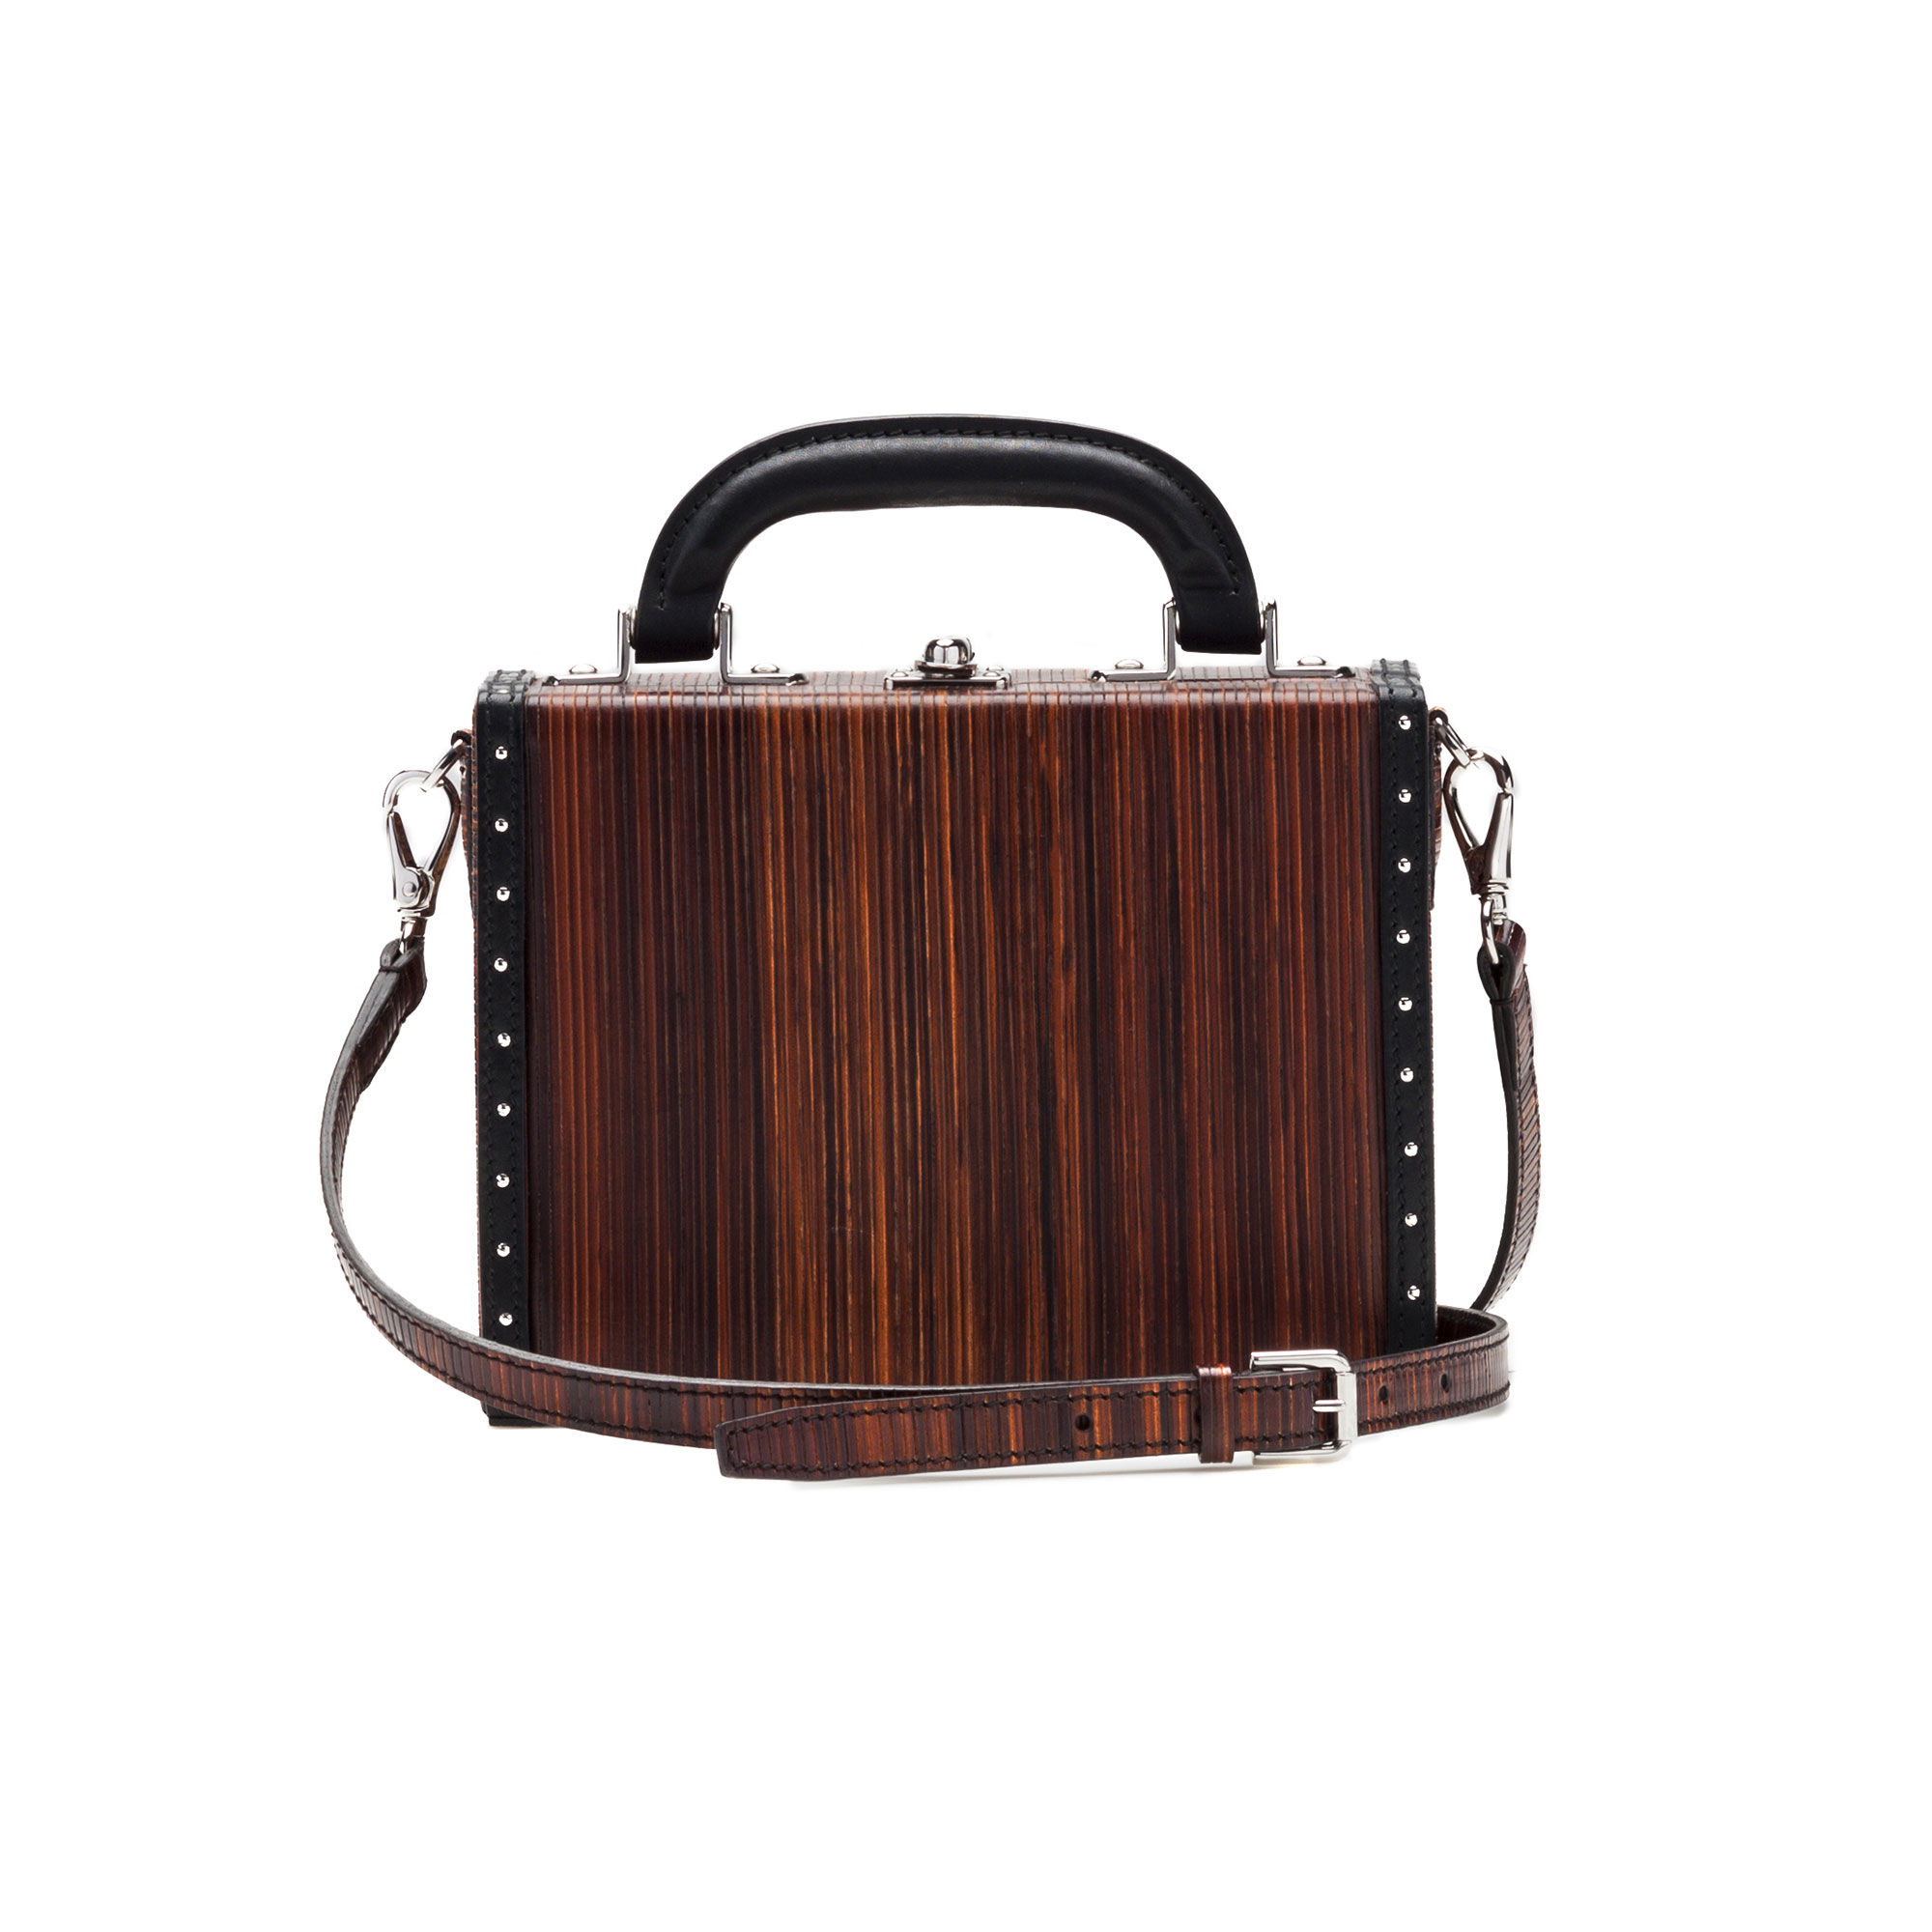 The leather color french calf, wood leather Mini Squared Bertoncina bag by Bertoni 1949 03